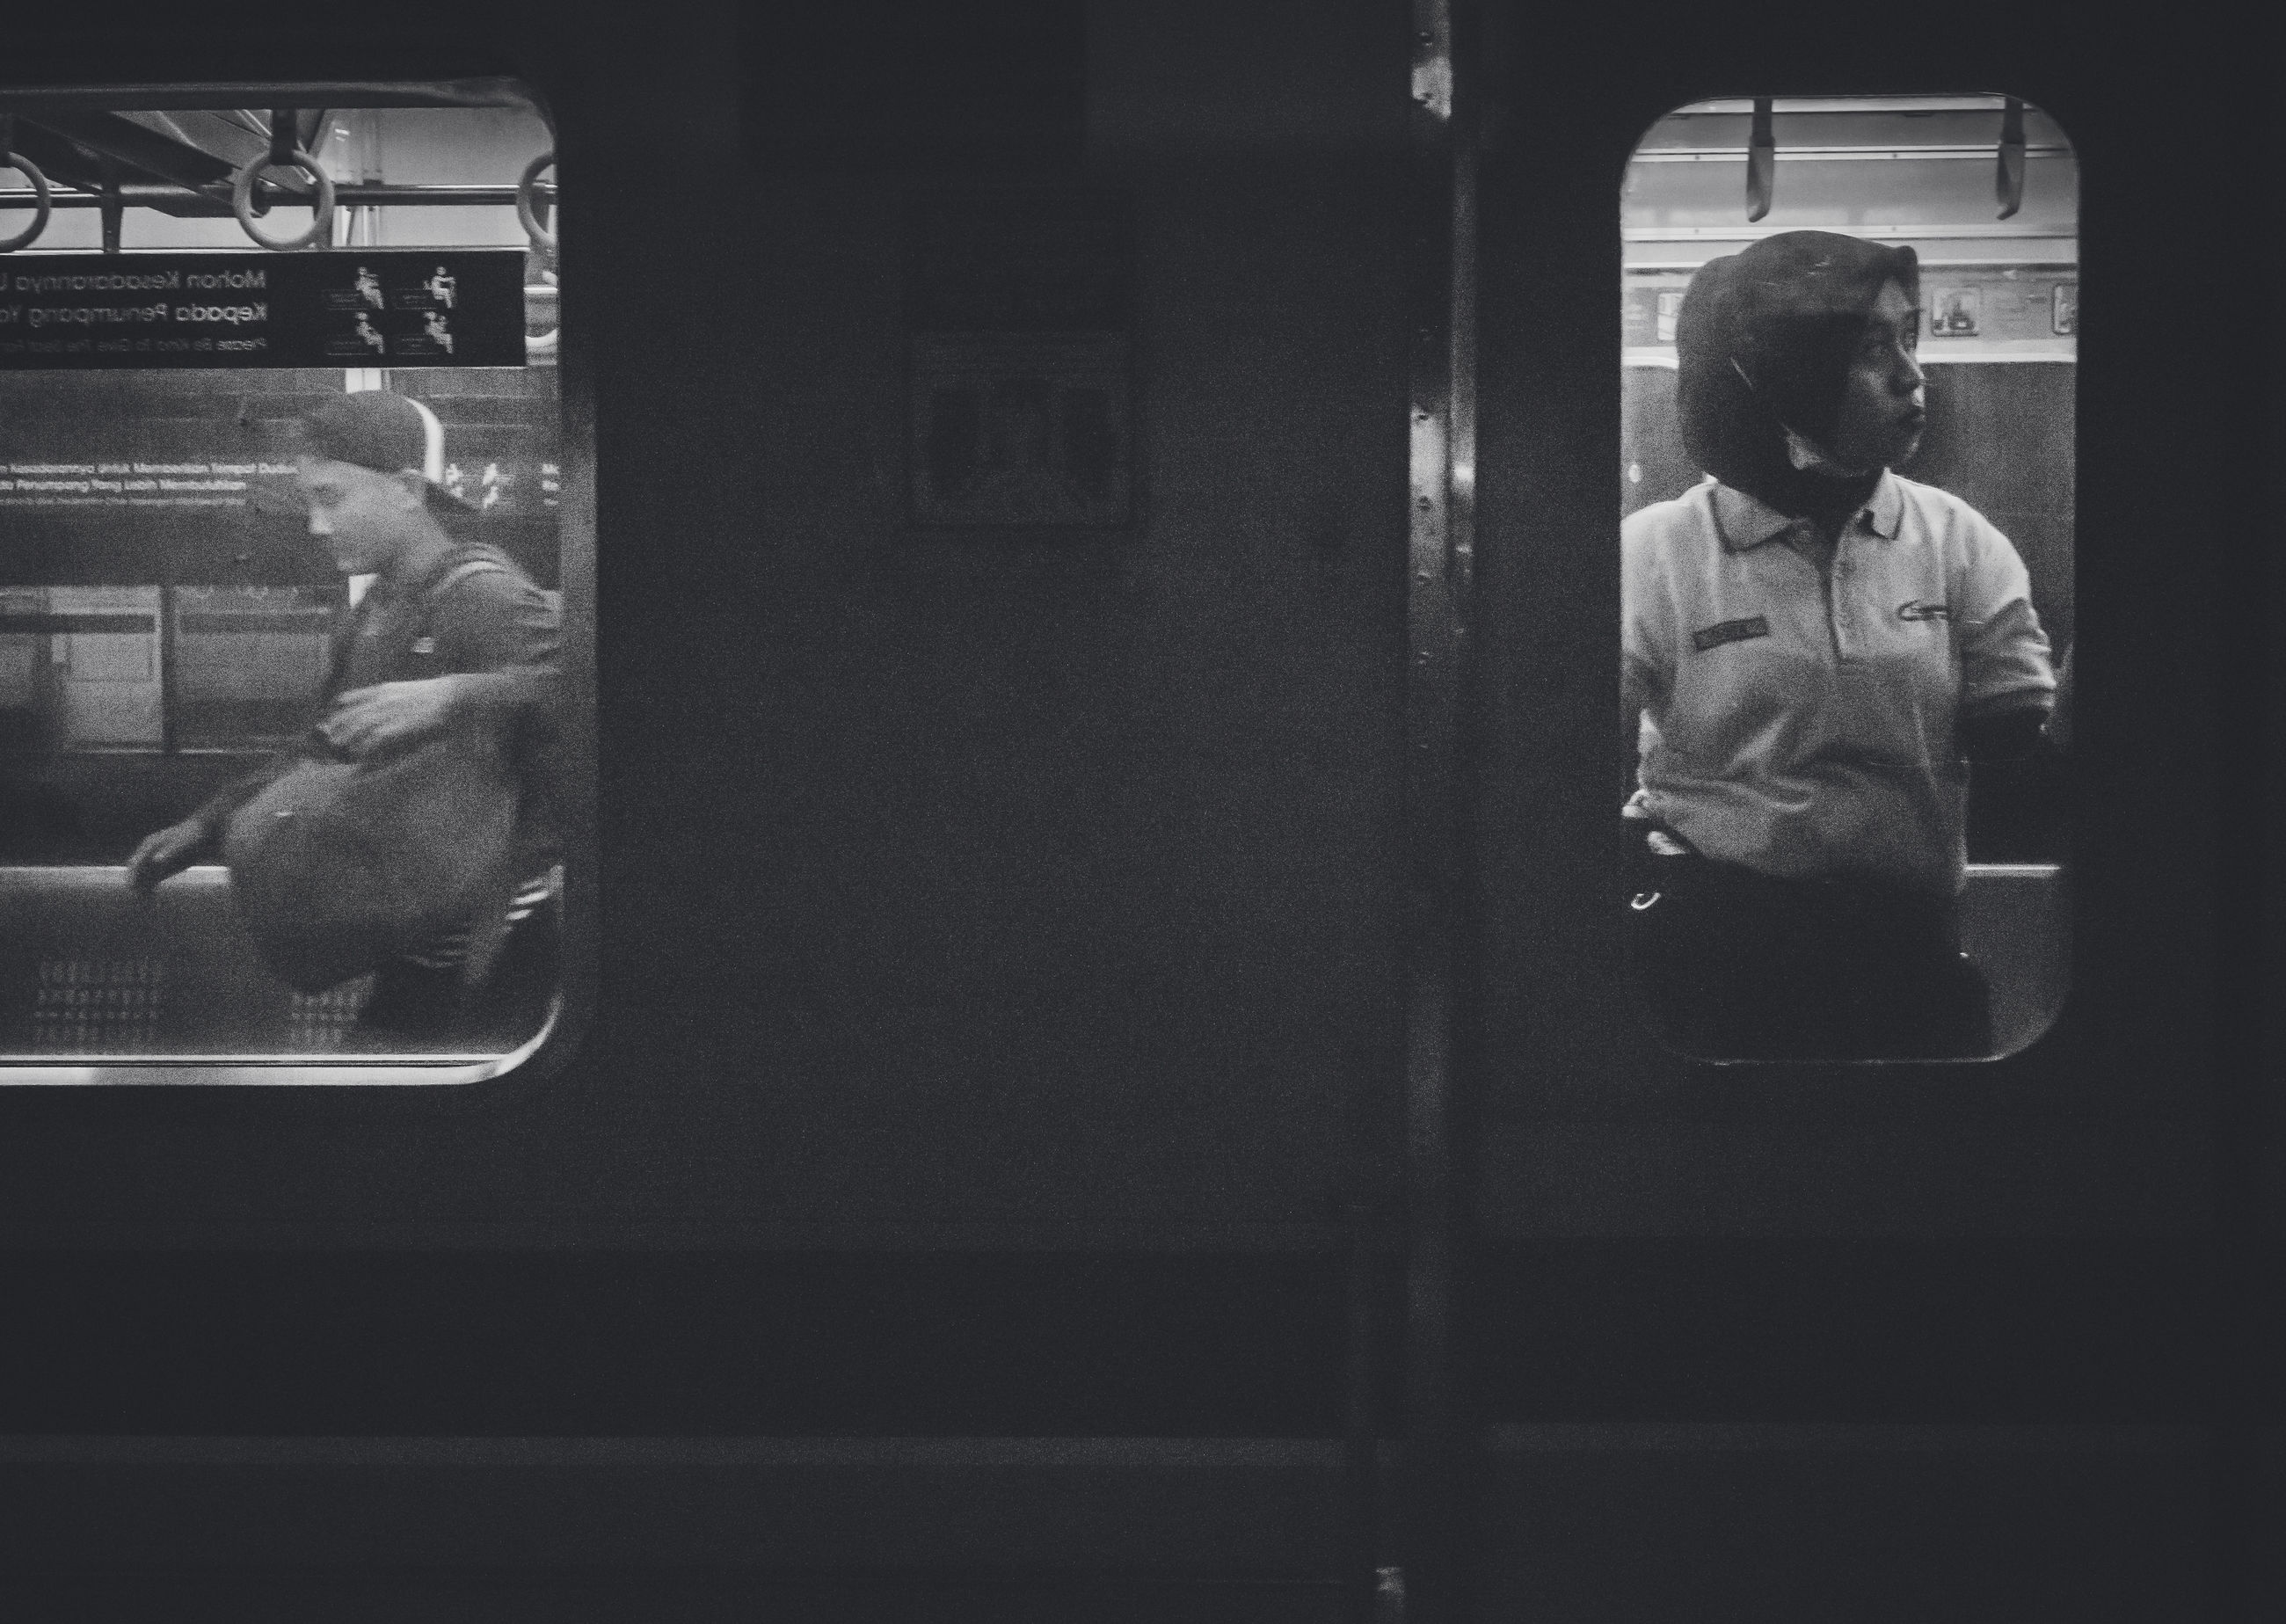 public transportation, real people, mode of transportation, men, rail transportation, transportation, one person, train, window, lifestyles, train - vehicle, rear view, land vehicle, sitting, leisure activity, vehicle interior, passenger, travel, transparent, outdoors, subway train, waiting